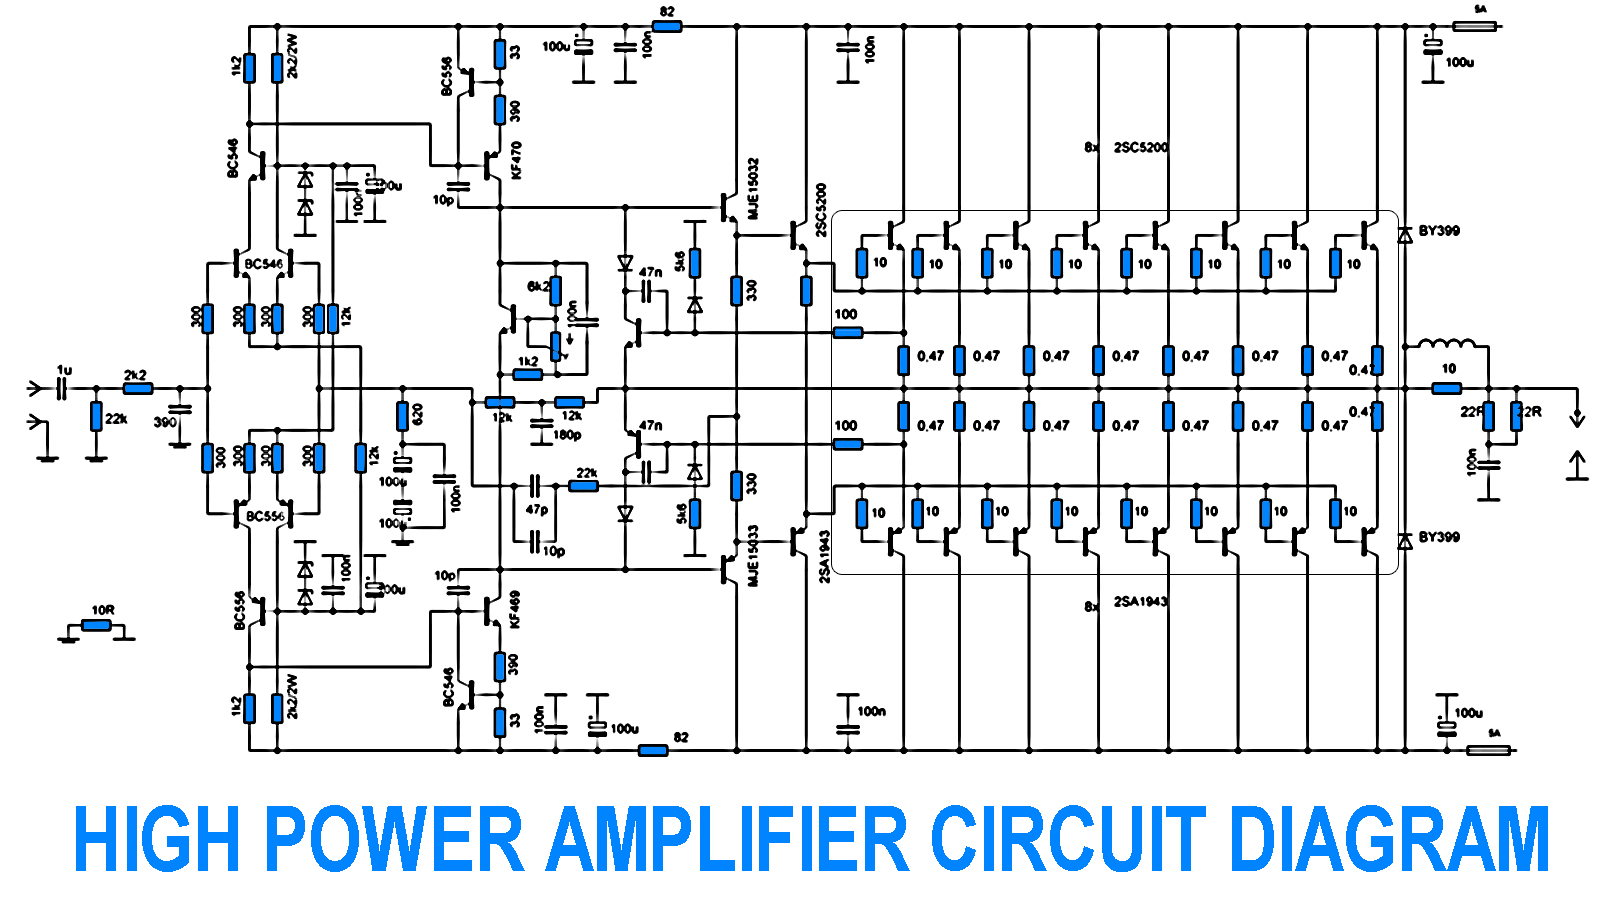 D Rudiant 230v Schematic Wiring Diagram Free Picture Pioneer Power Amplifier Circuit 700w With 2sc5200 2sa1943